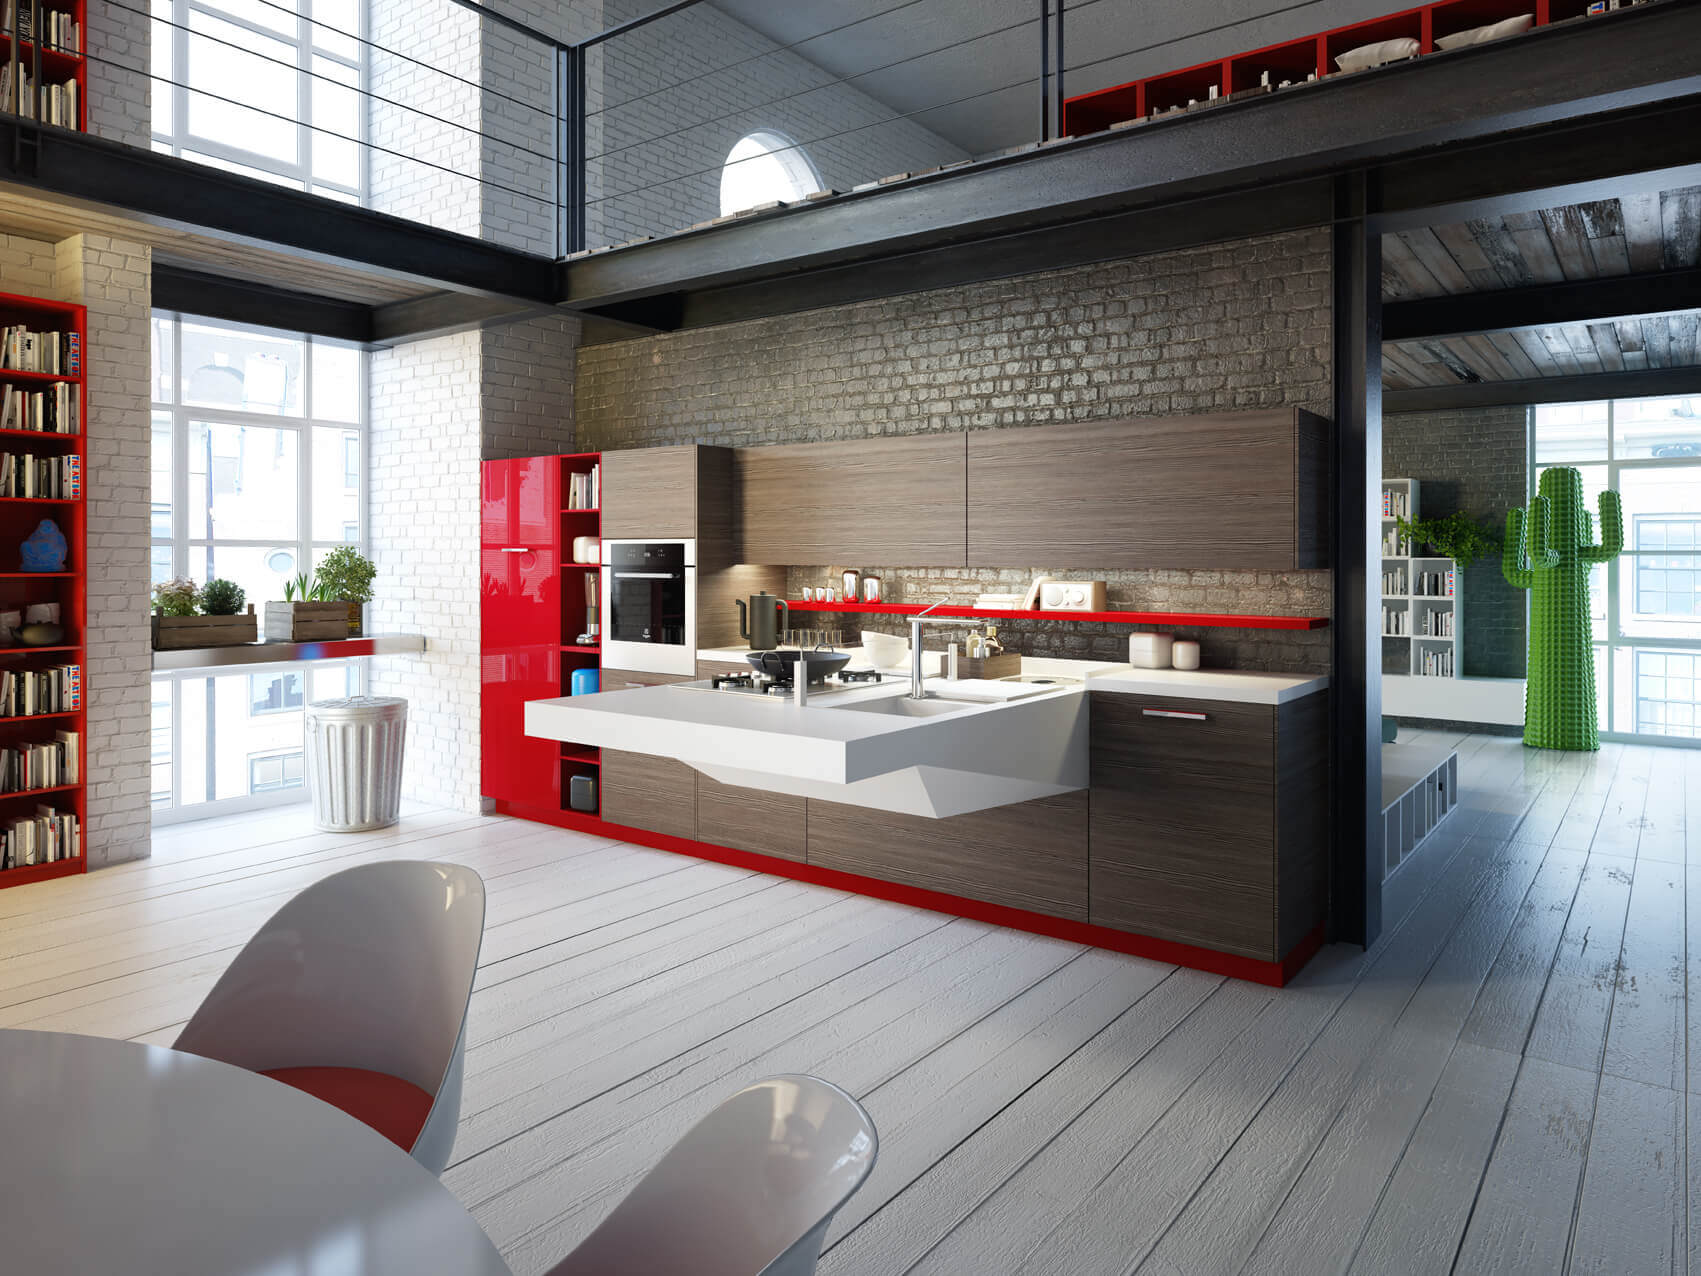 Modern kitchen interior design means sometimes using unusual materials. This design melds hardwood, ceramics, concrete, granite and glass together in a kitchen space that is a work of art in its own right